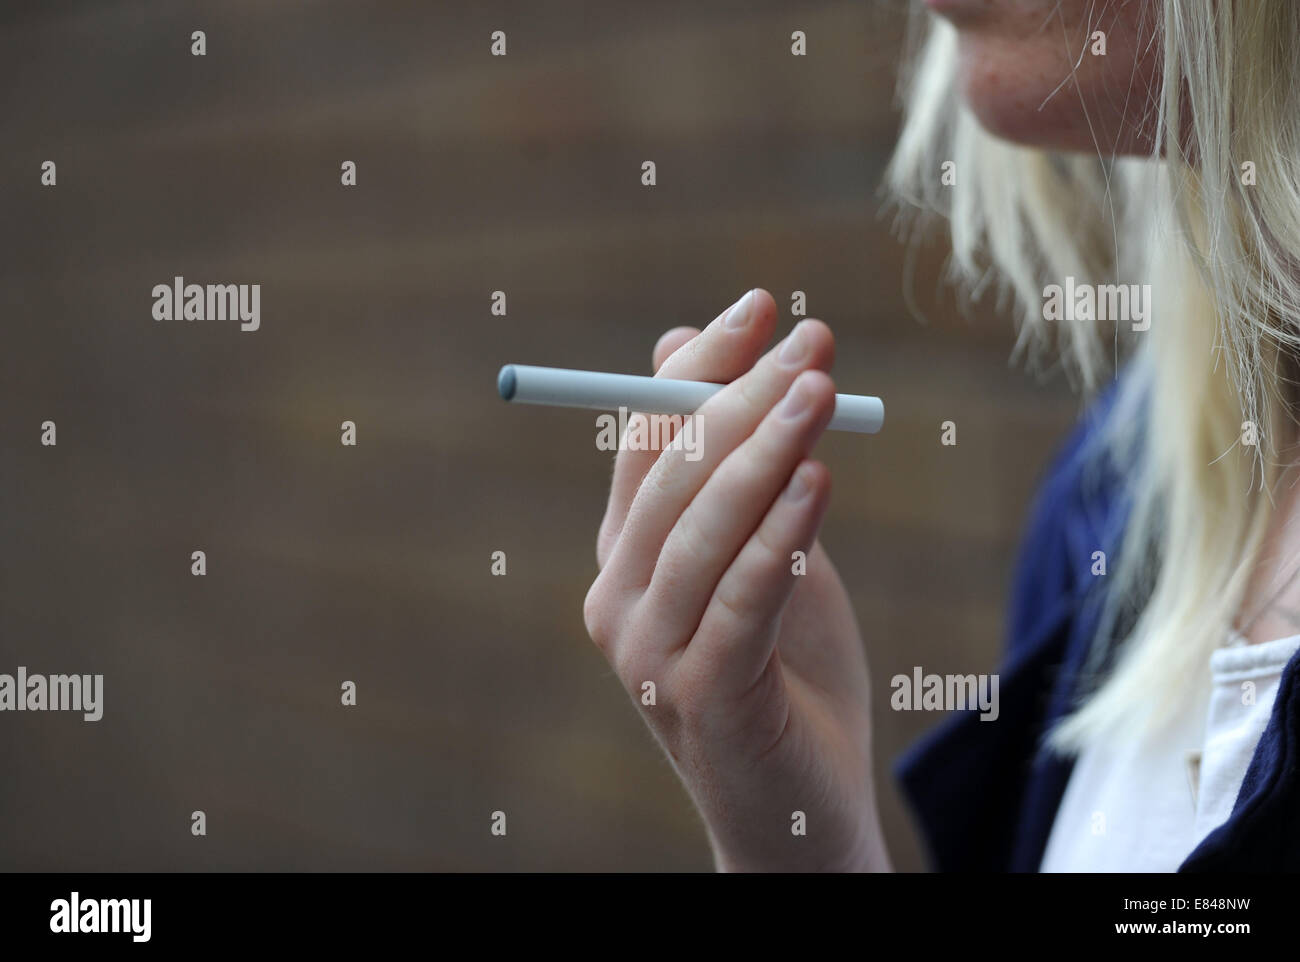 A girl holds a e-cigarette in her hand. - Stock Image